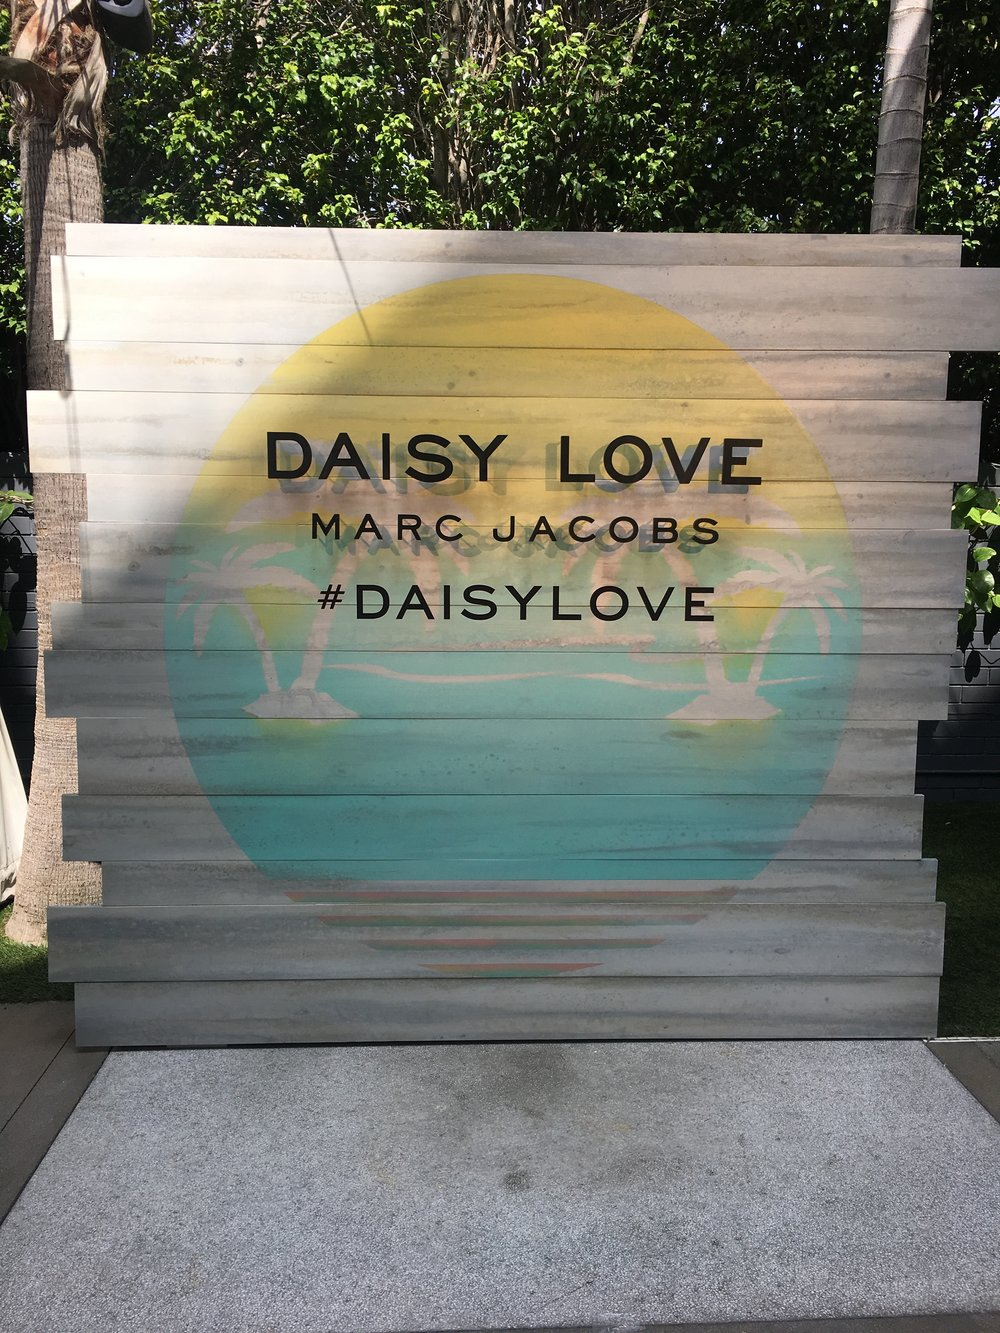 Marc Jacobs Daisy Love Influencer Dinner